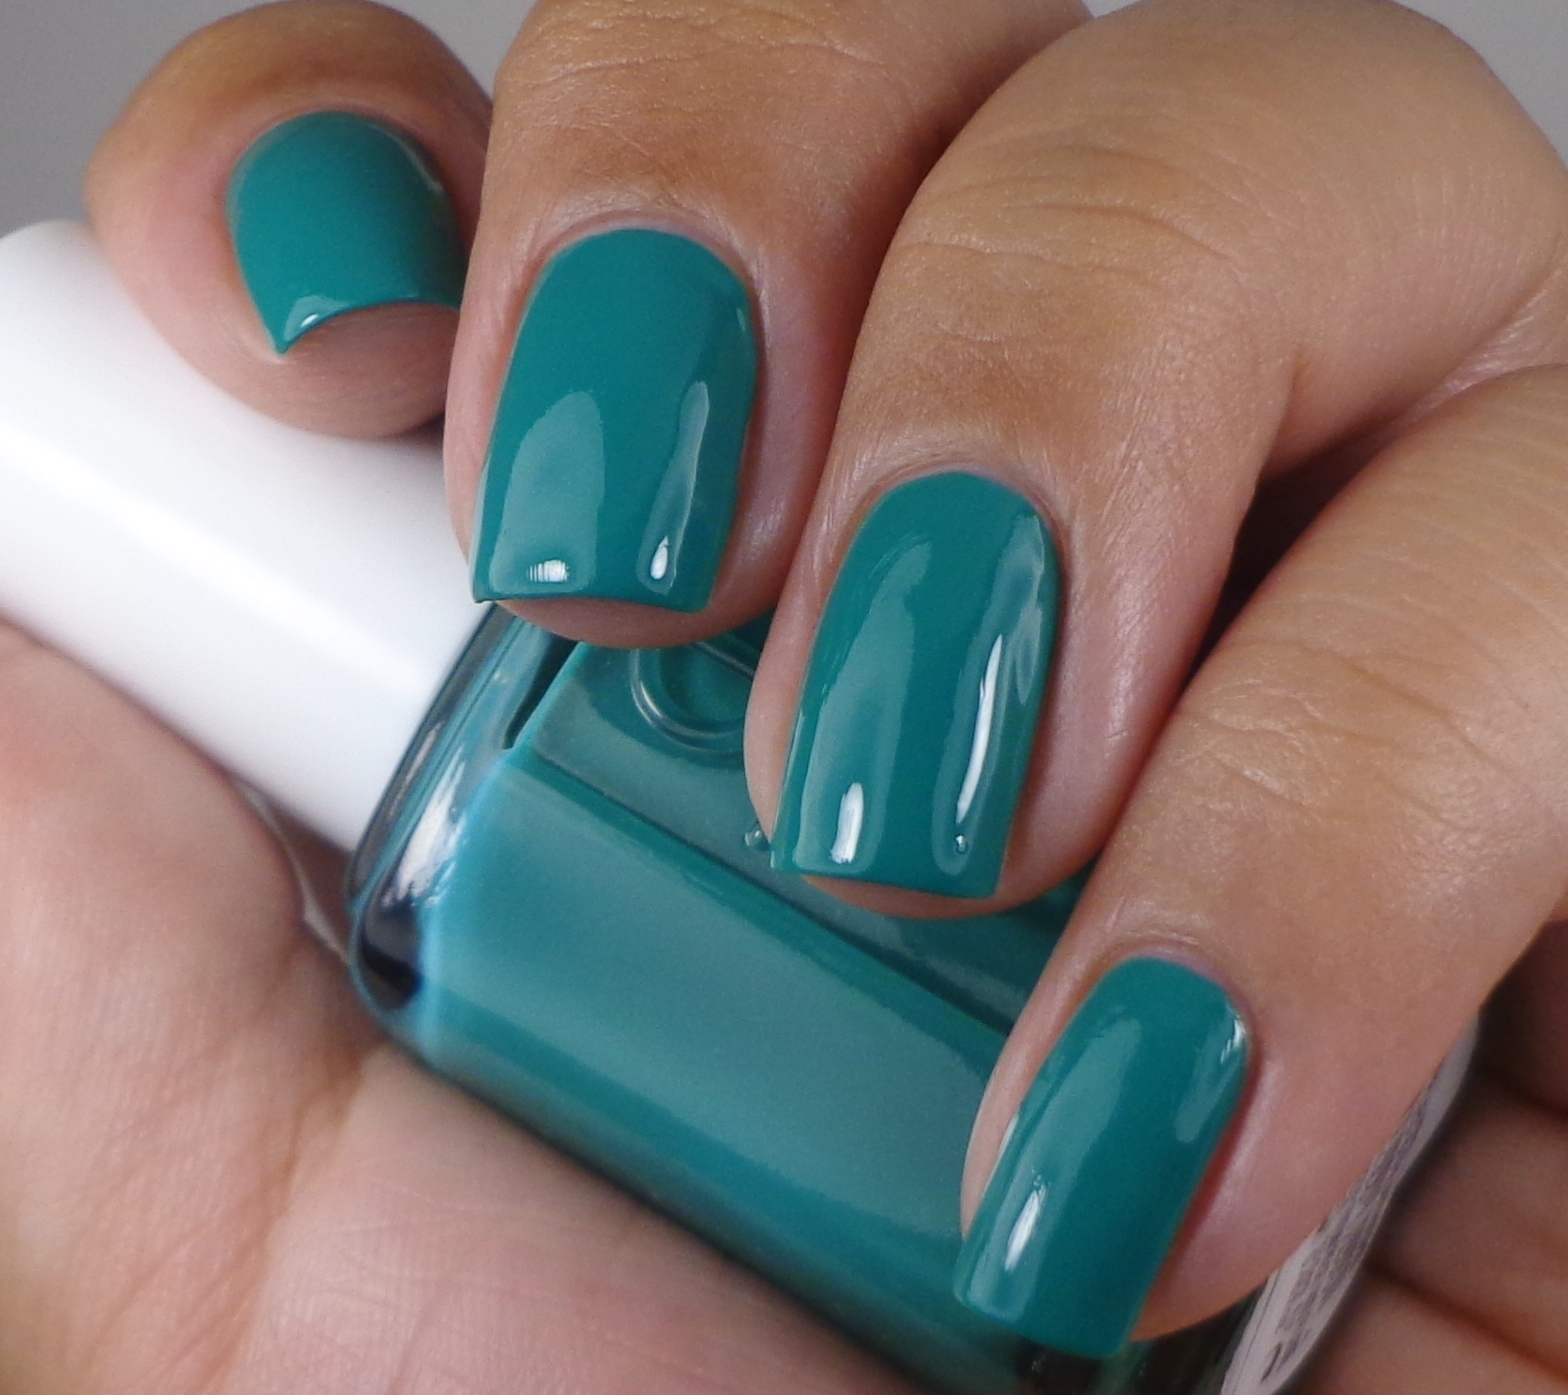 Essie Haute In The Heat Collection Summer 2014 - Of Life and Lacquer